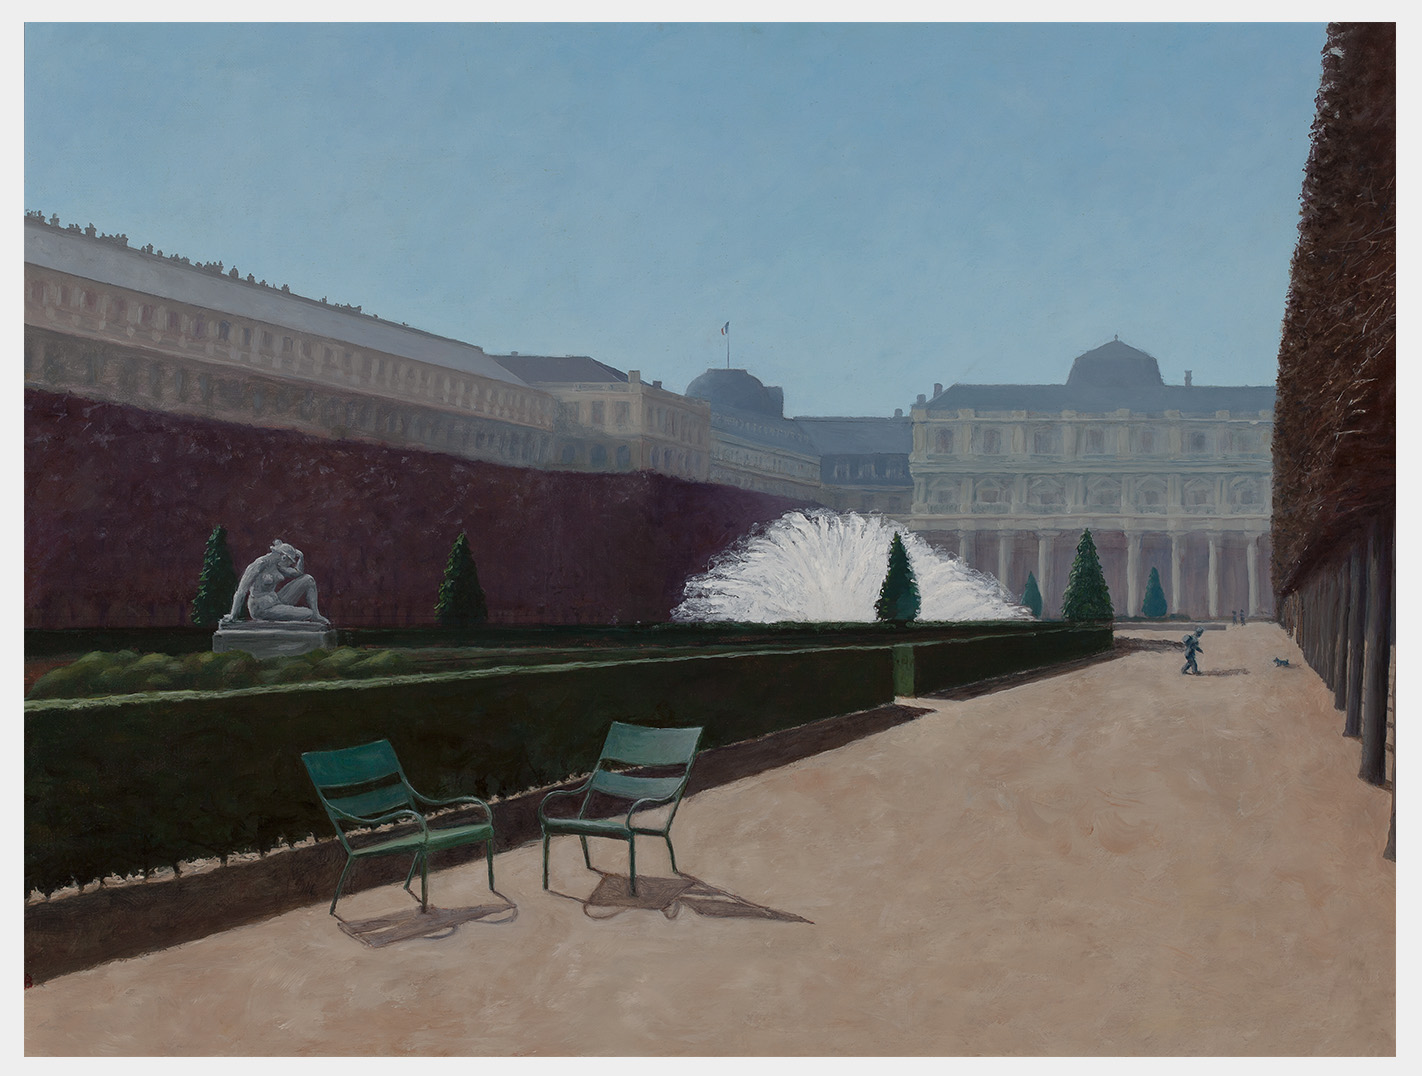 Realistic oil painting of the royal palace gardens in Paris, a series of severely trimmed trees on the right and left, box hedges surrounding formal gardens with sculpture and a brilliant fountain, and on the sandy path a couple of chairs in the foreground and a small boy with a dog far down the allée.